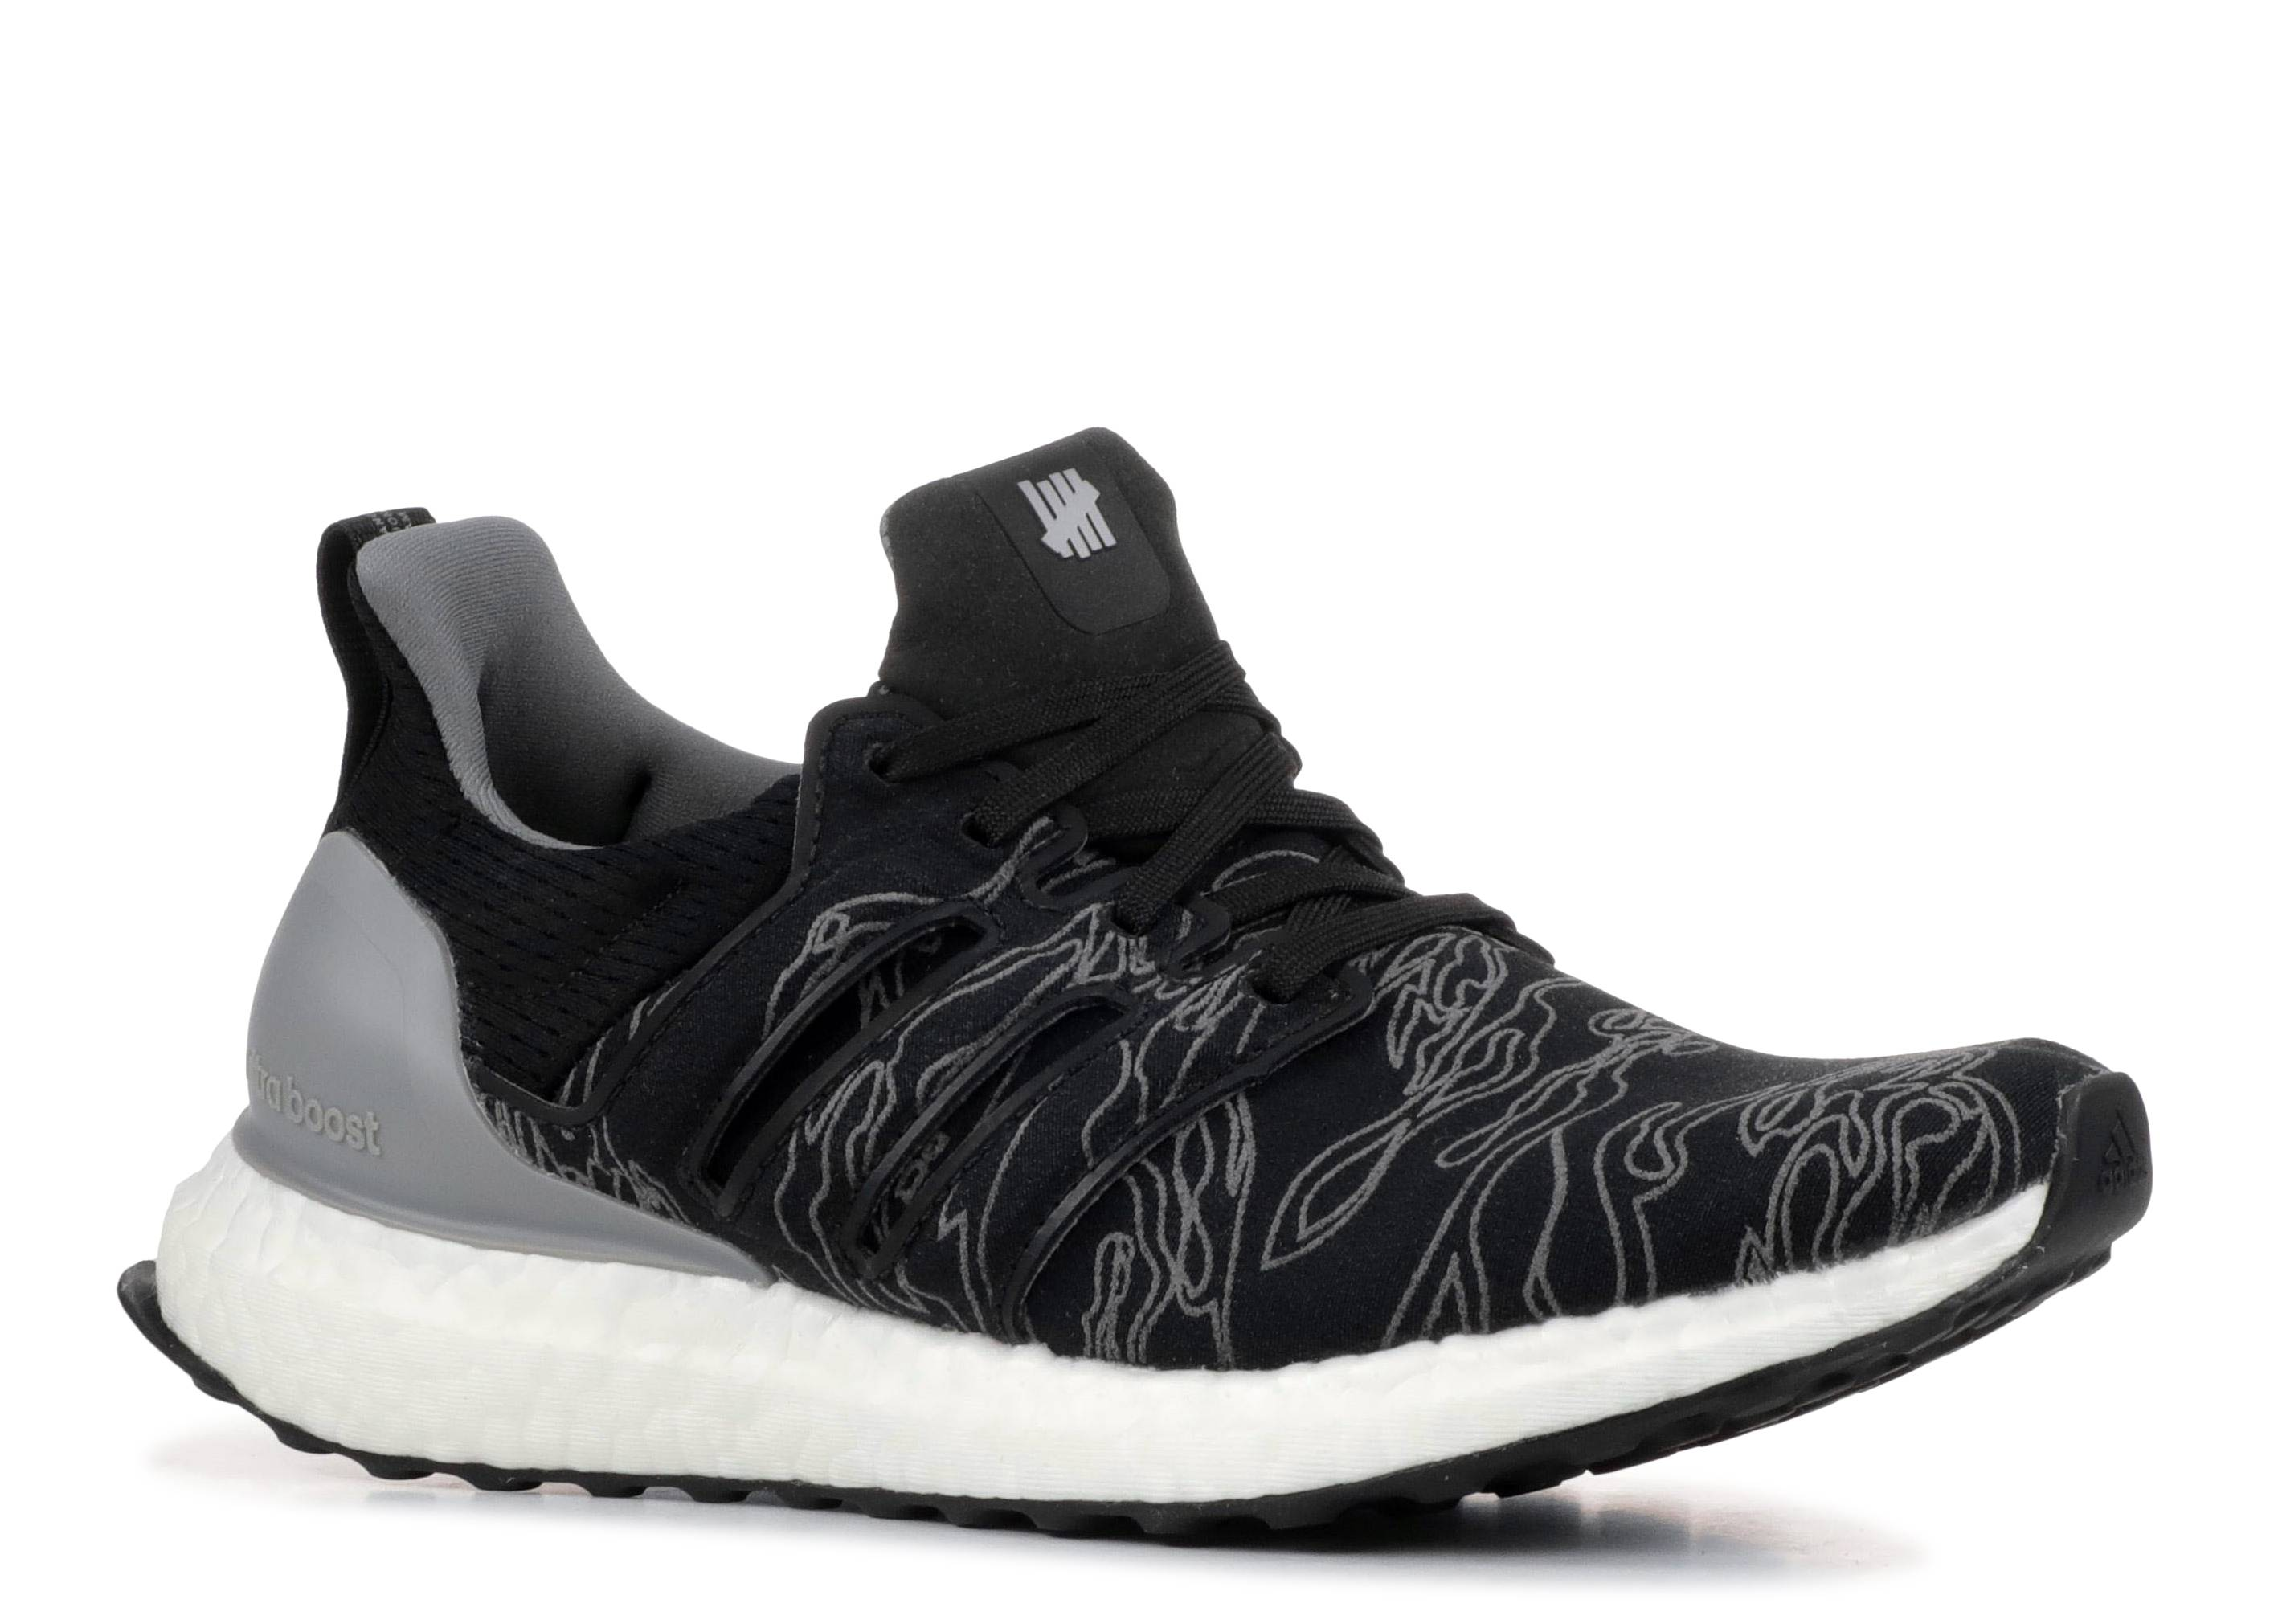 UNDEFEATED X ULTRABOOST 'UTILITY BLACK'